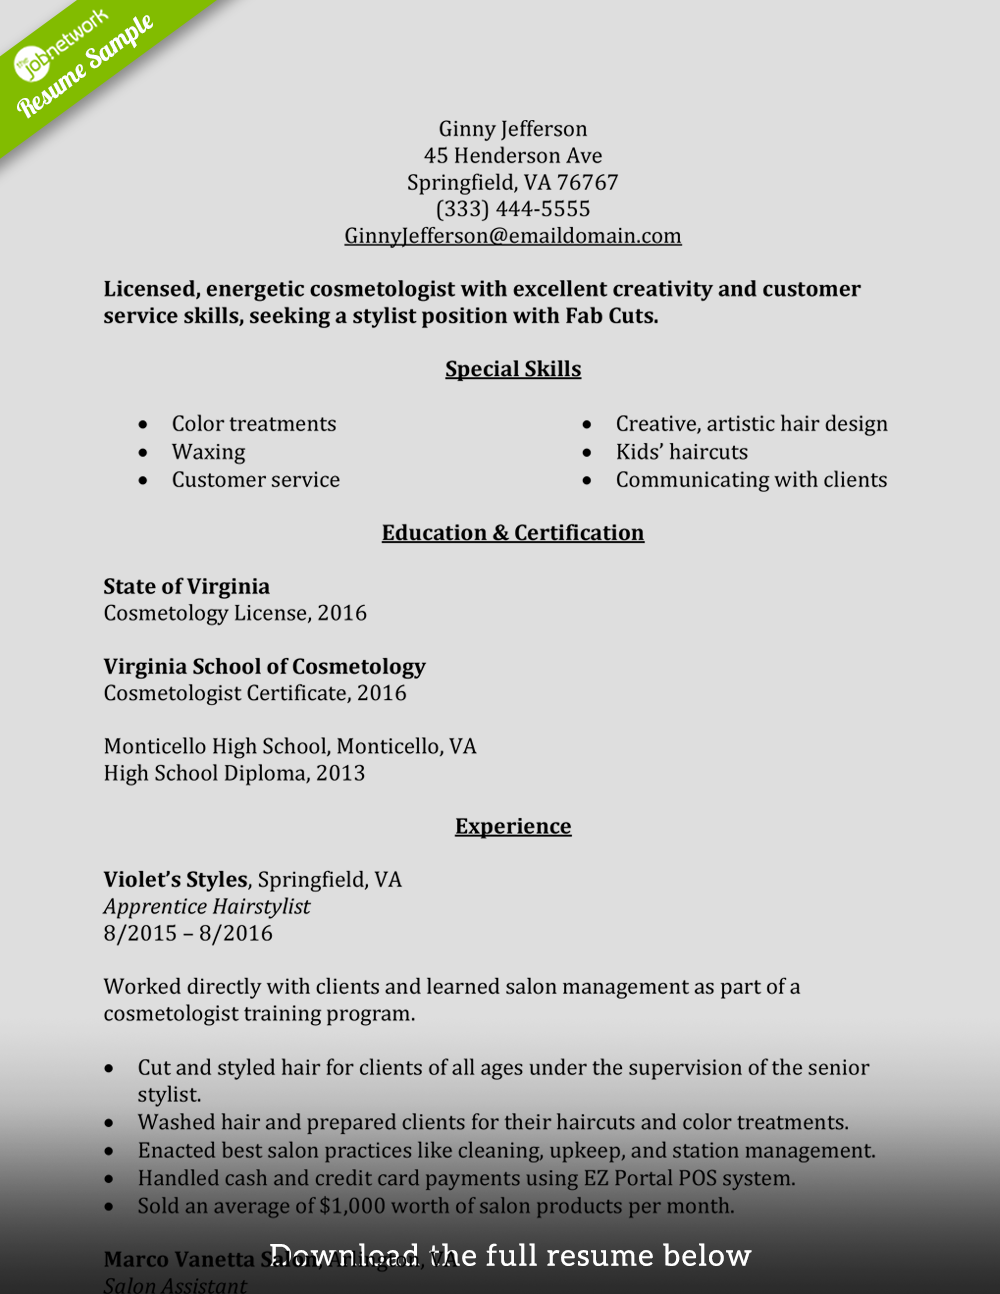 how to write a perfect cosmetology resume (examples included) also cosmetologistresumeentrylevel